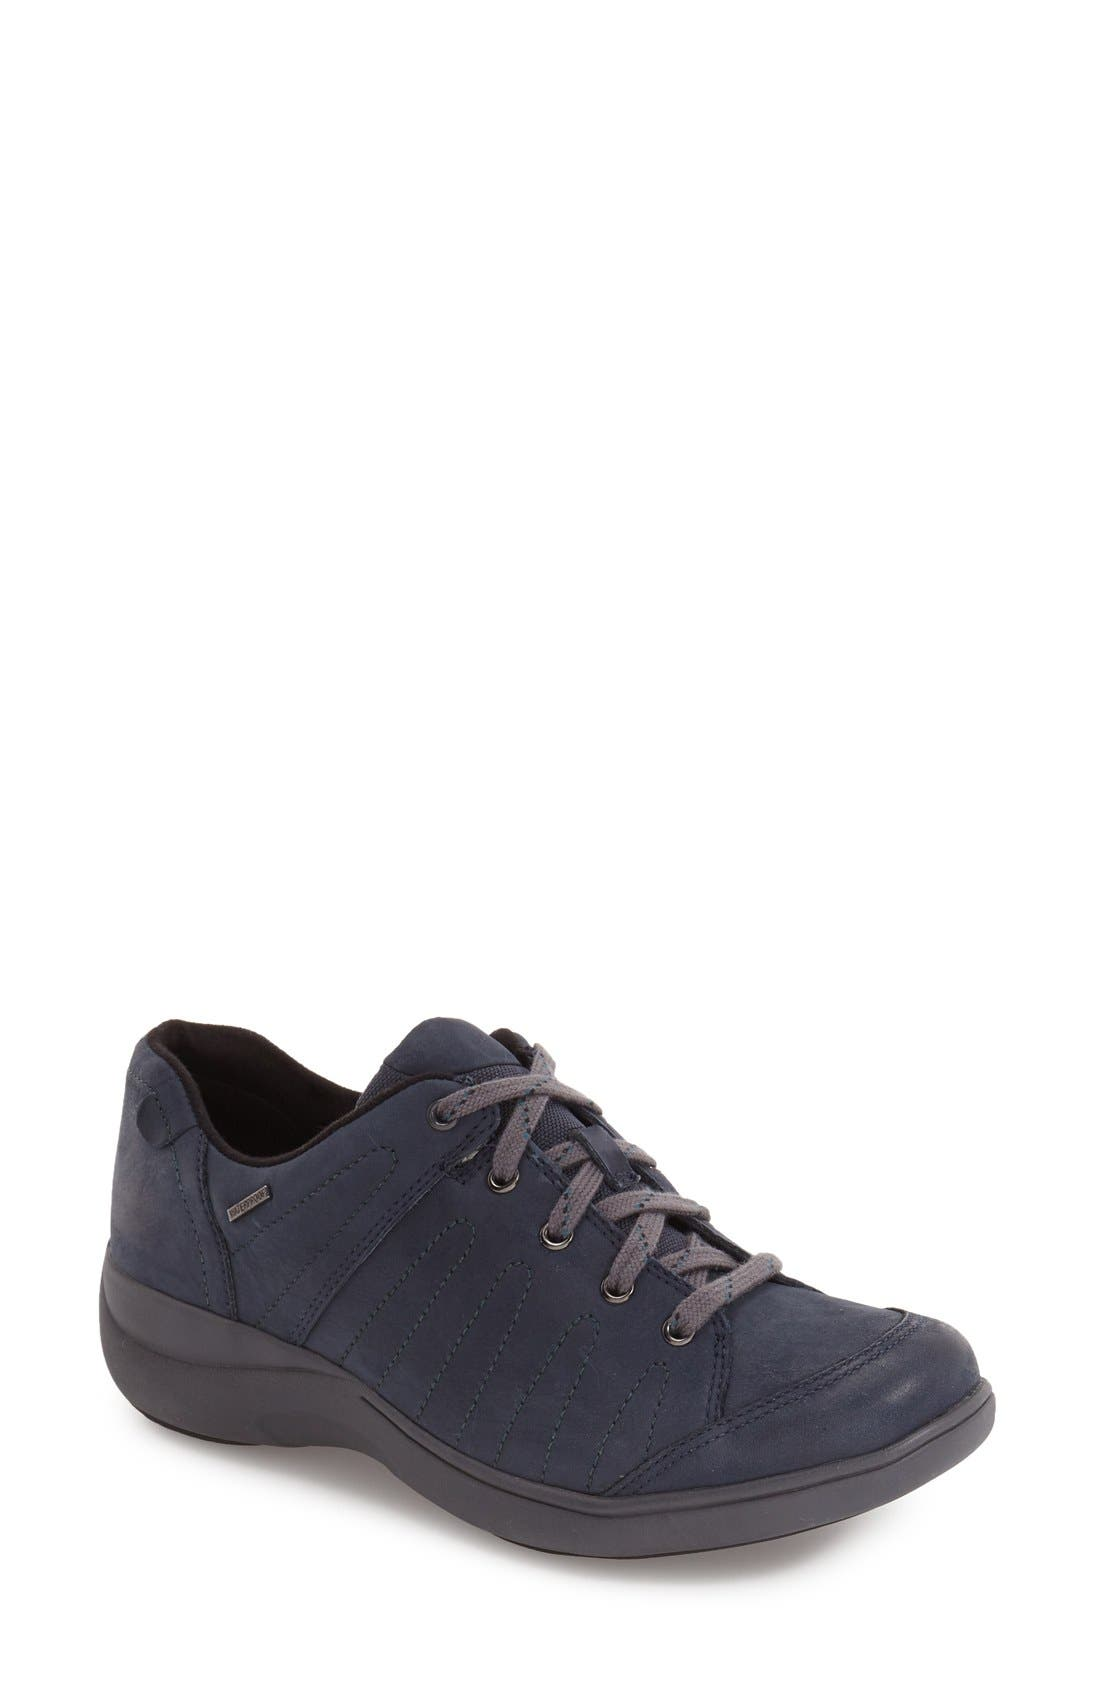 'REVsavor' Waterproof Sneaker,                             Main thumbnail 1, color,                             Navy Leather